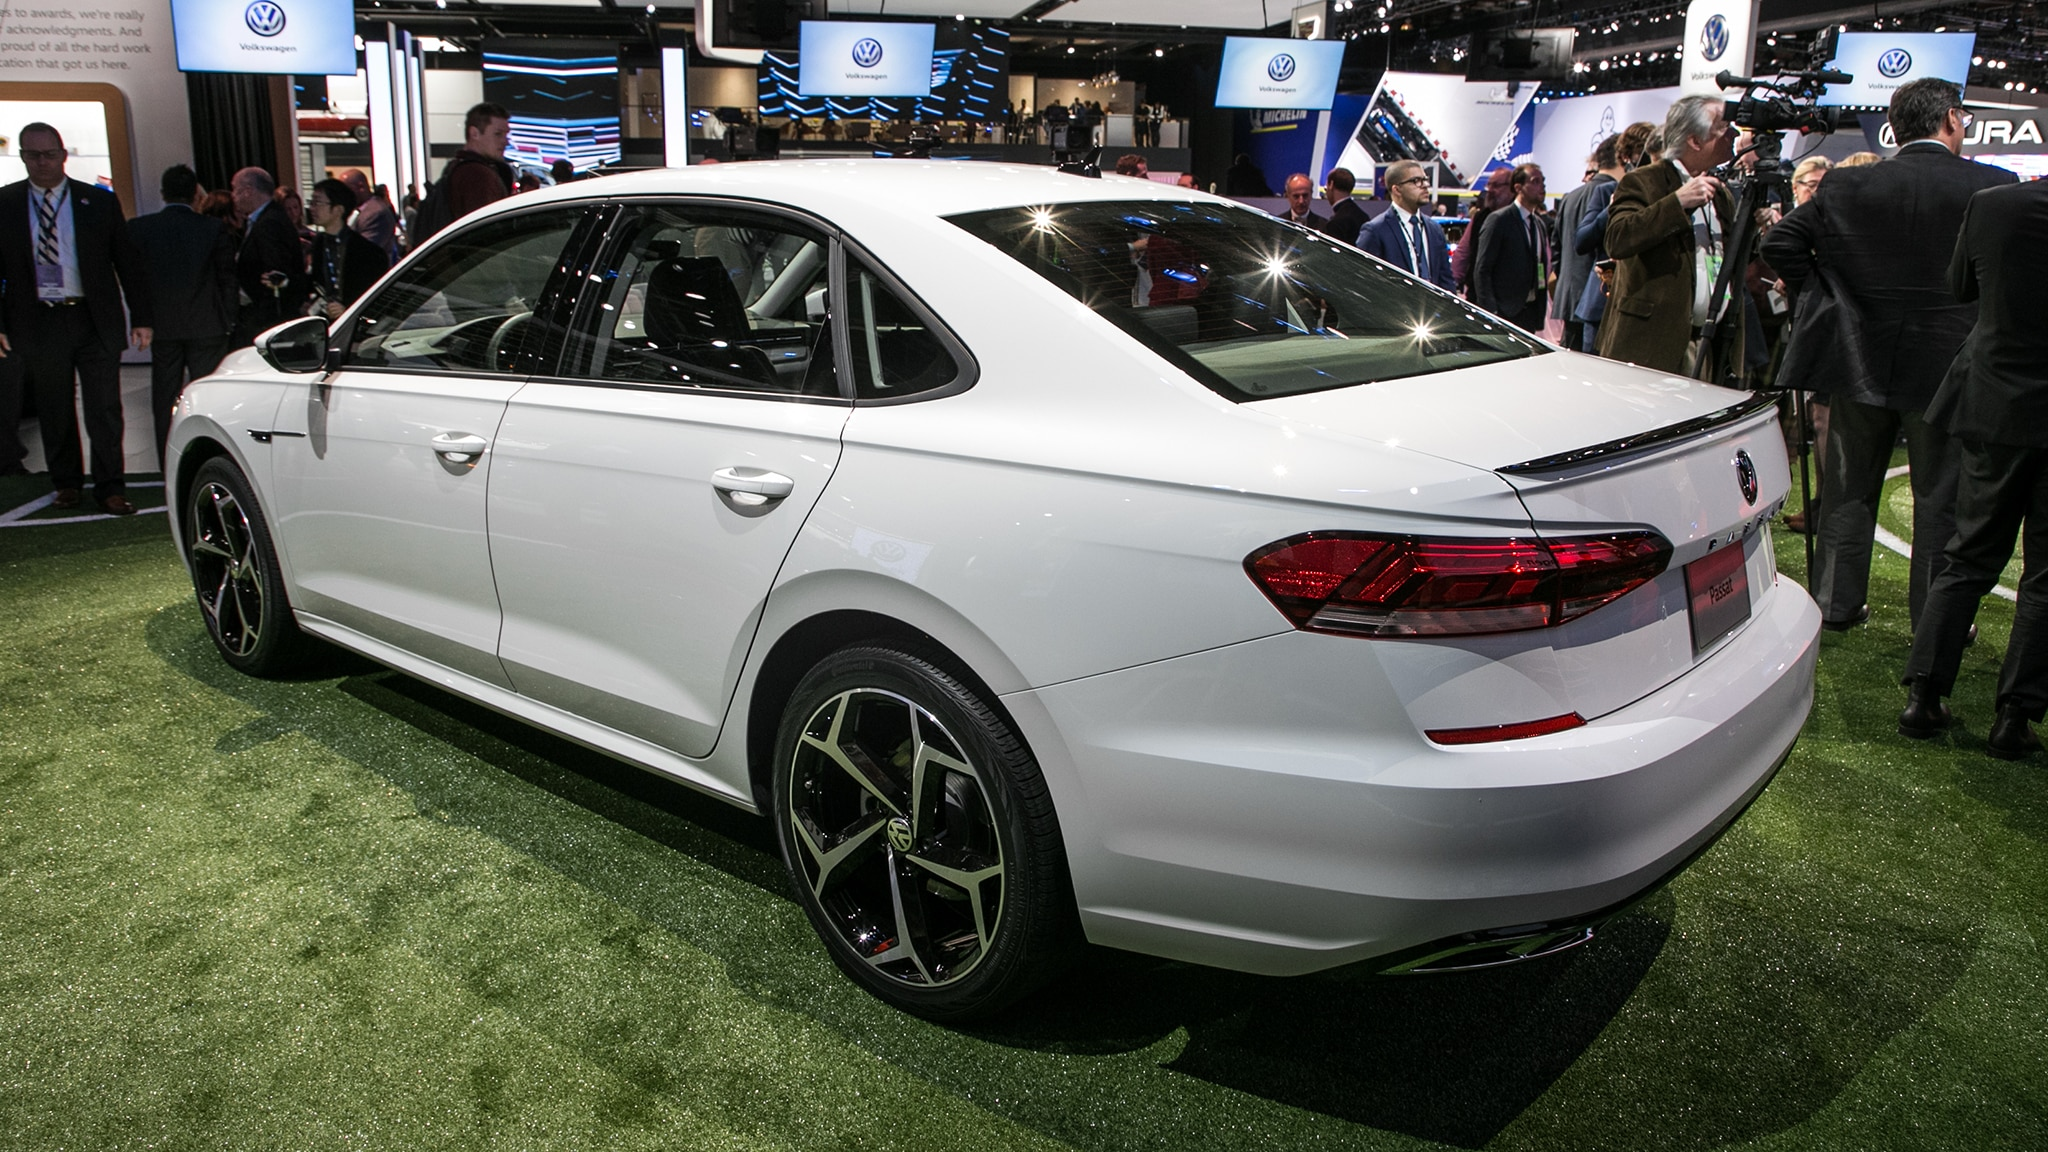 81 The Best 2020 Vw Passat Release